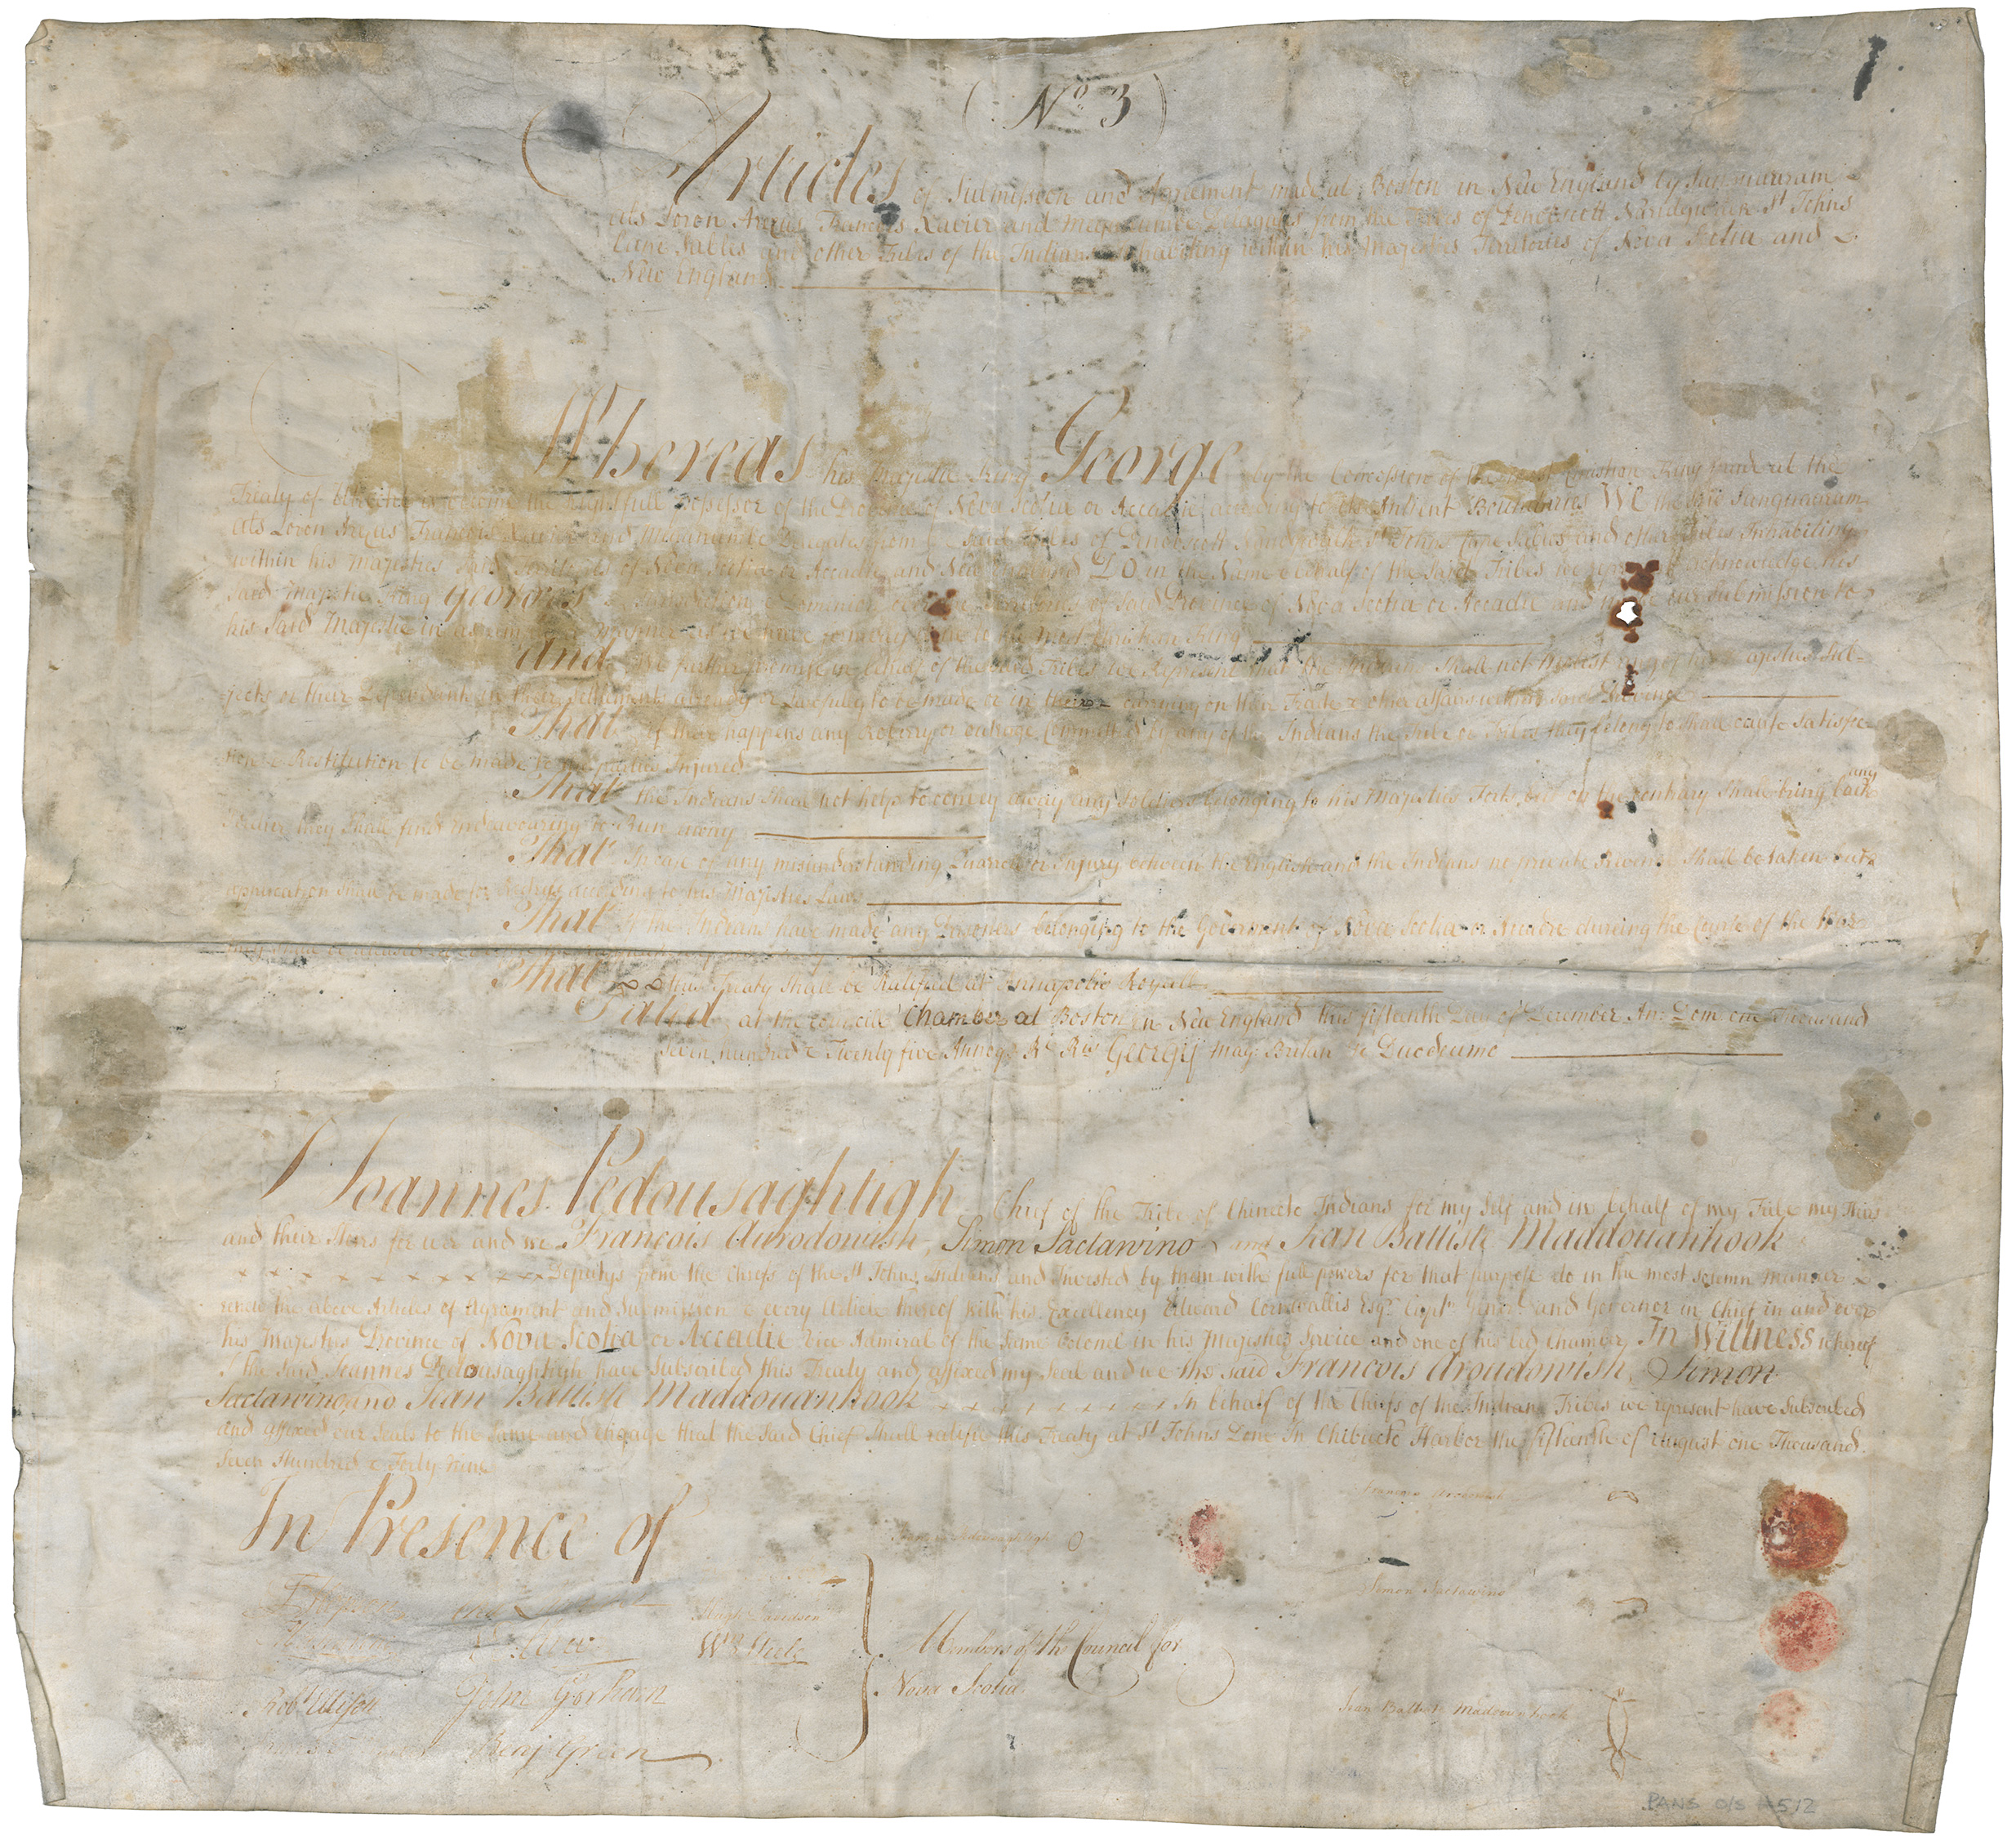 1749 Renewal at Chebucto of the Treaty of 1725